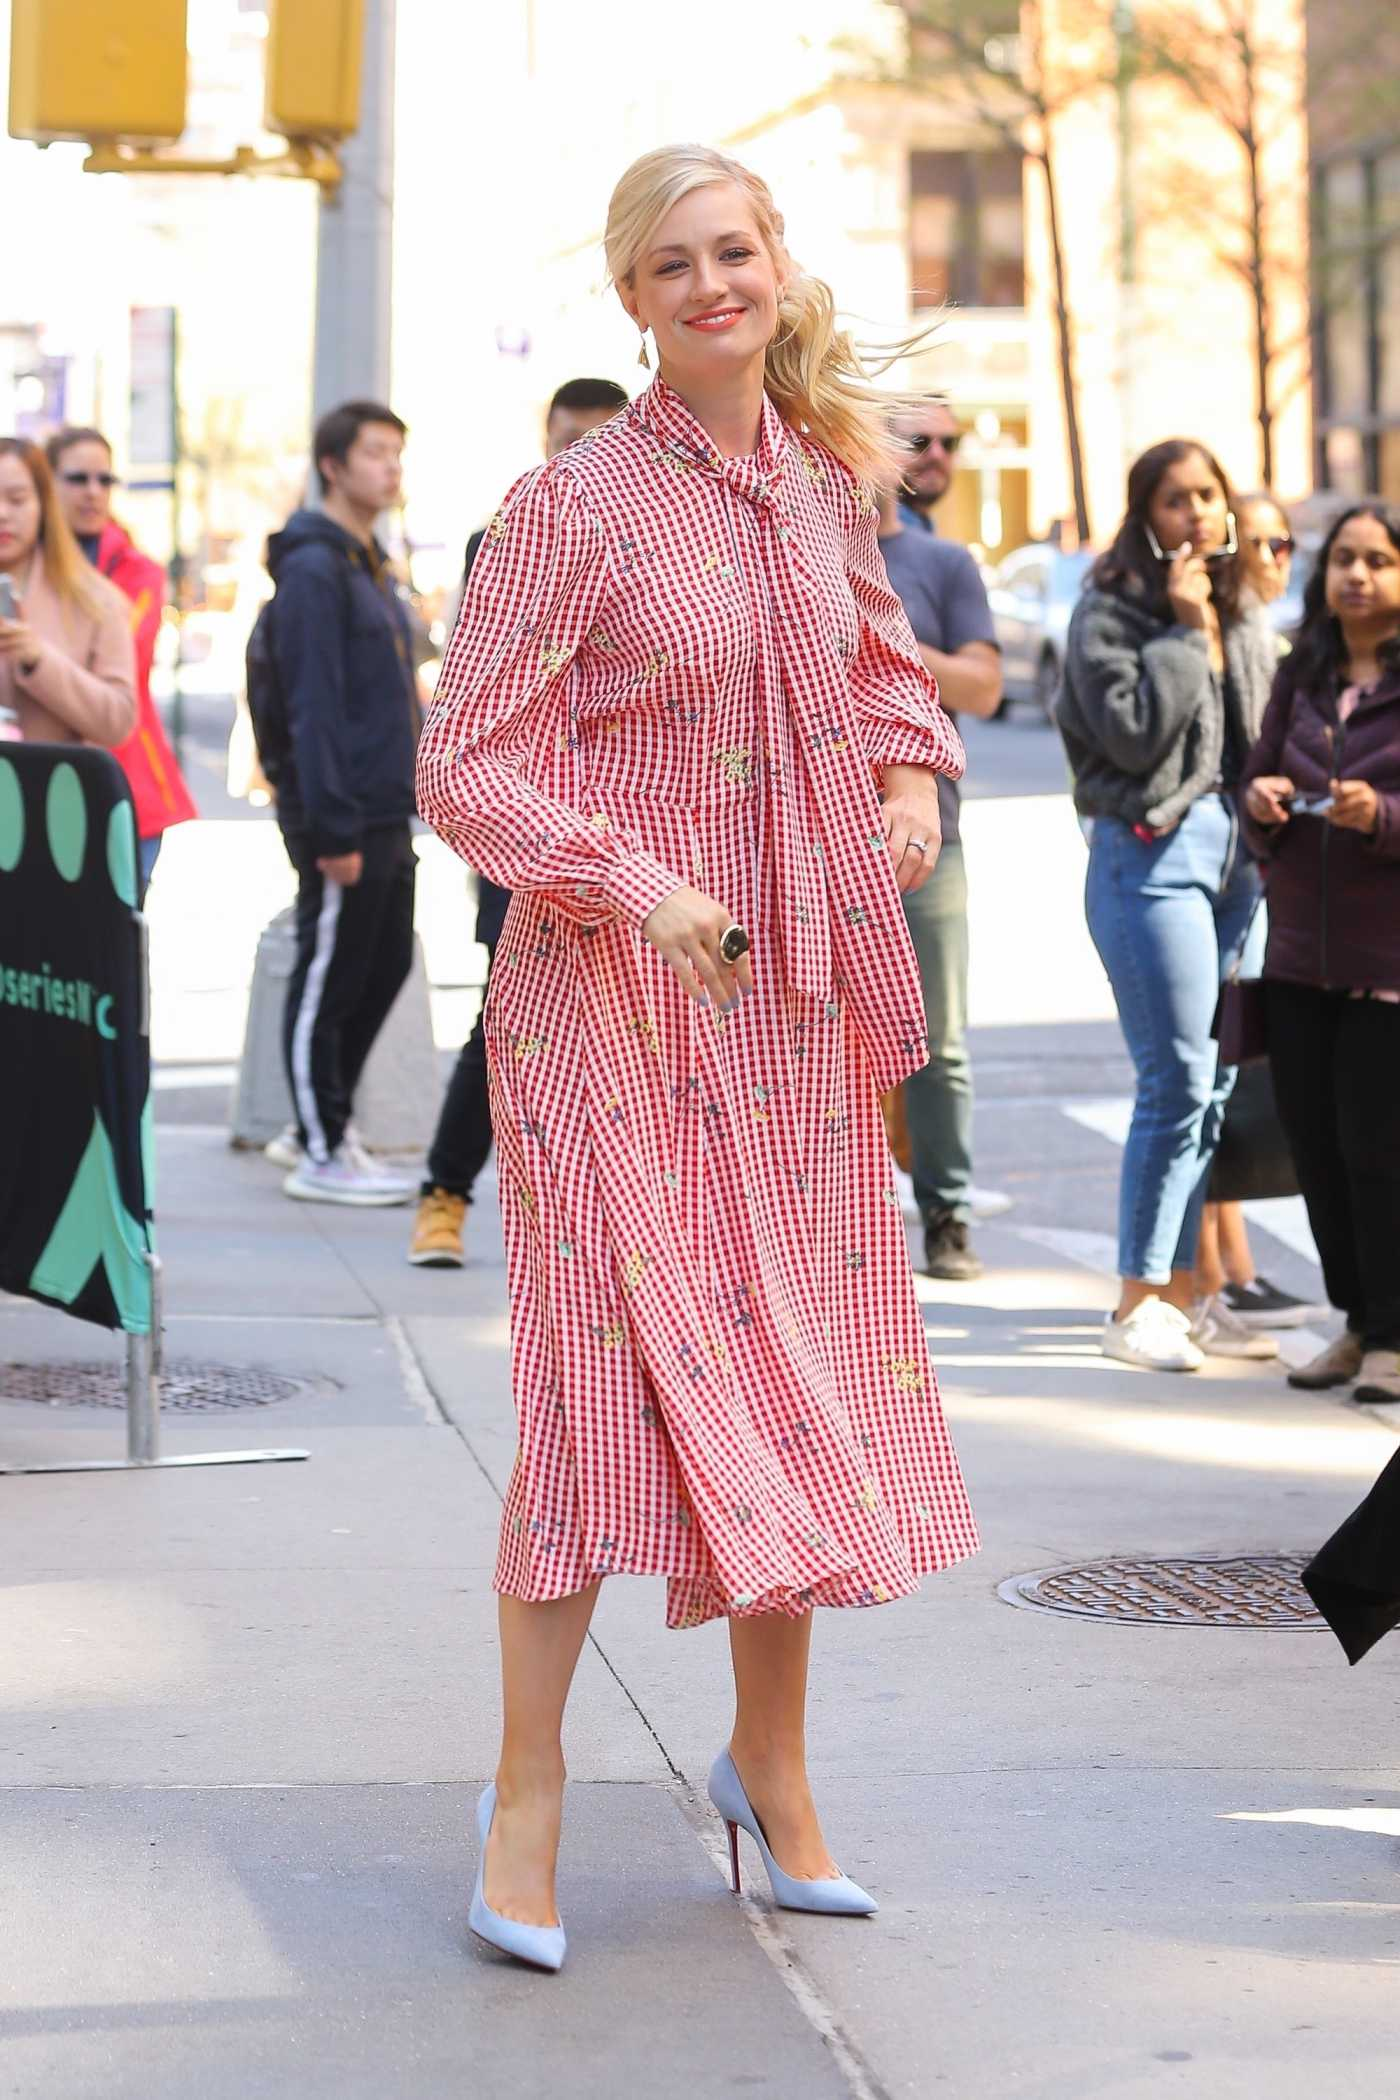 Beth Behrs Attends AOL Build Studio in New York City 04/17/2019